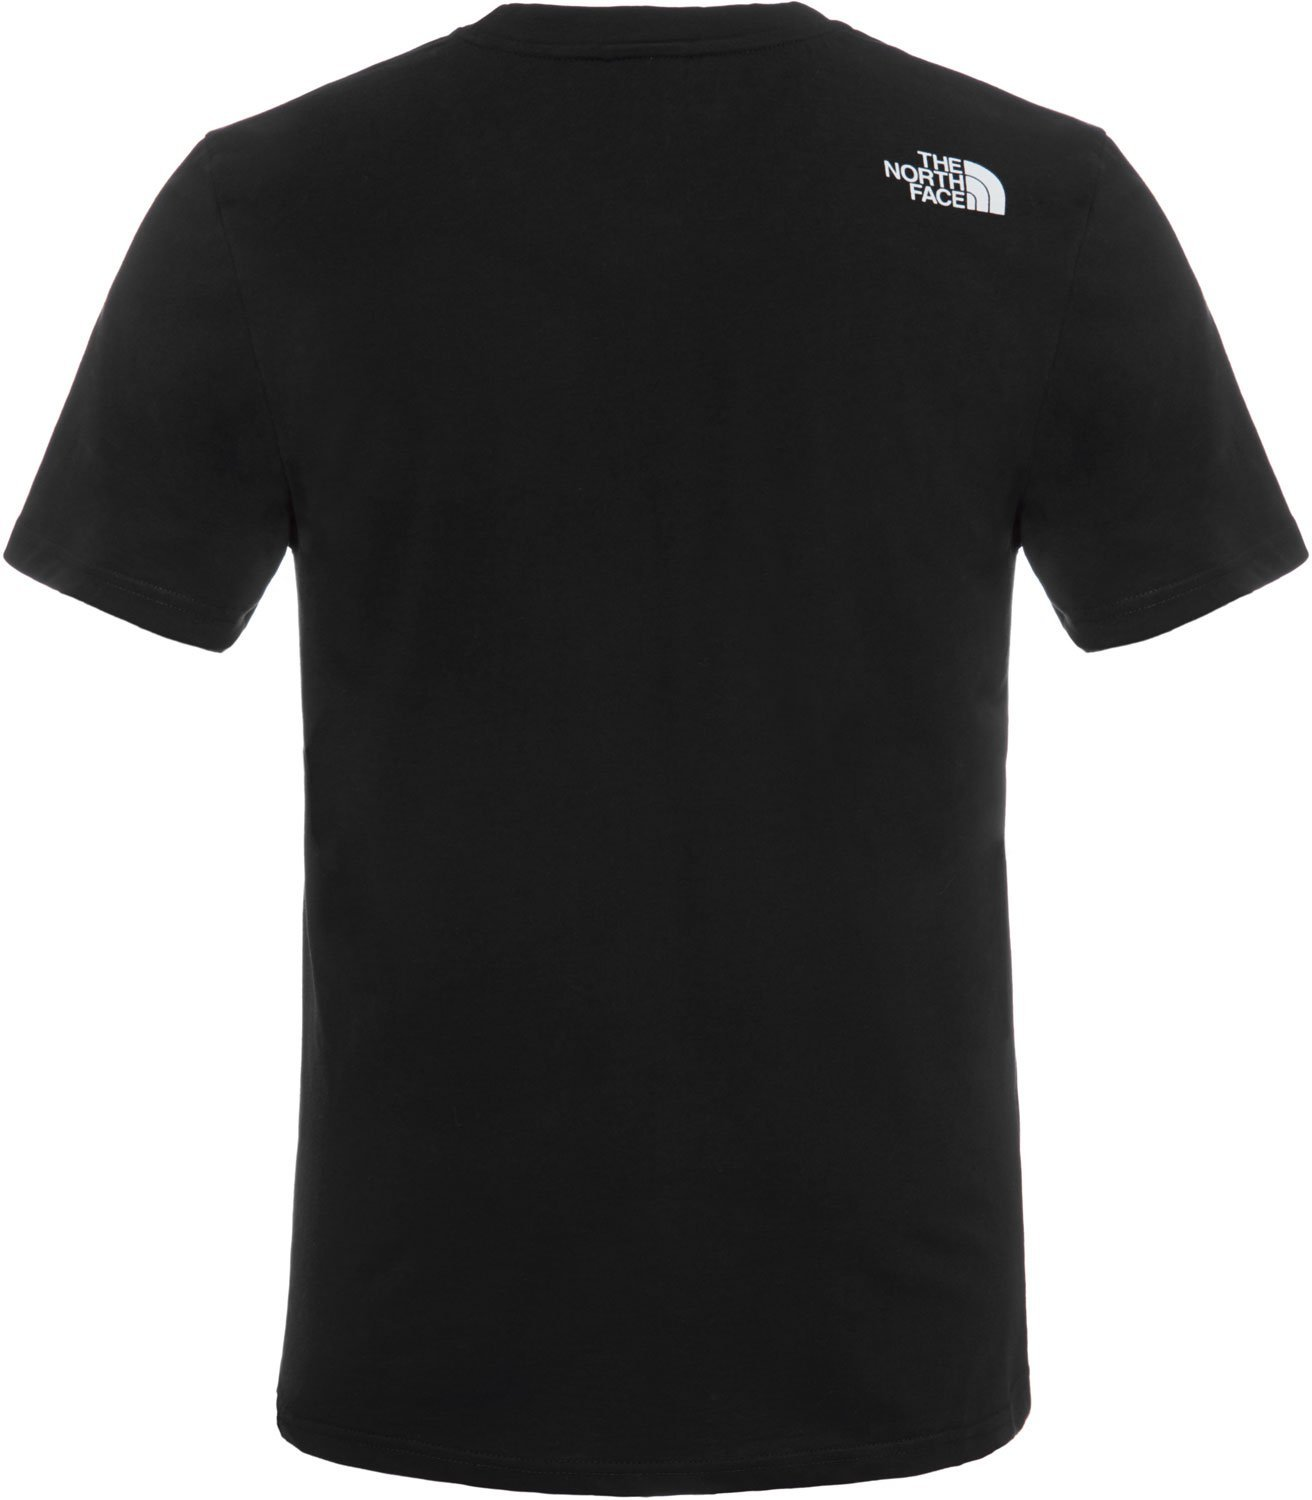 abf4aa3461f3 The North Face Men Simple Dome Short Sleeved T-Shirt  Amazon.co.uk ...